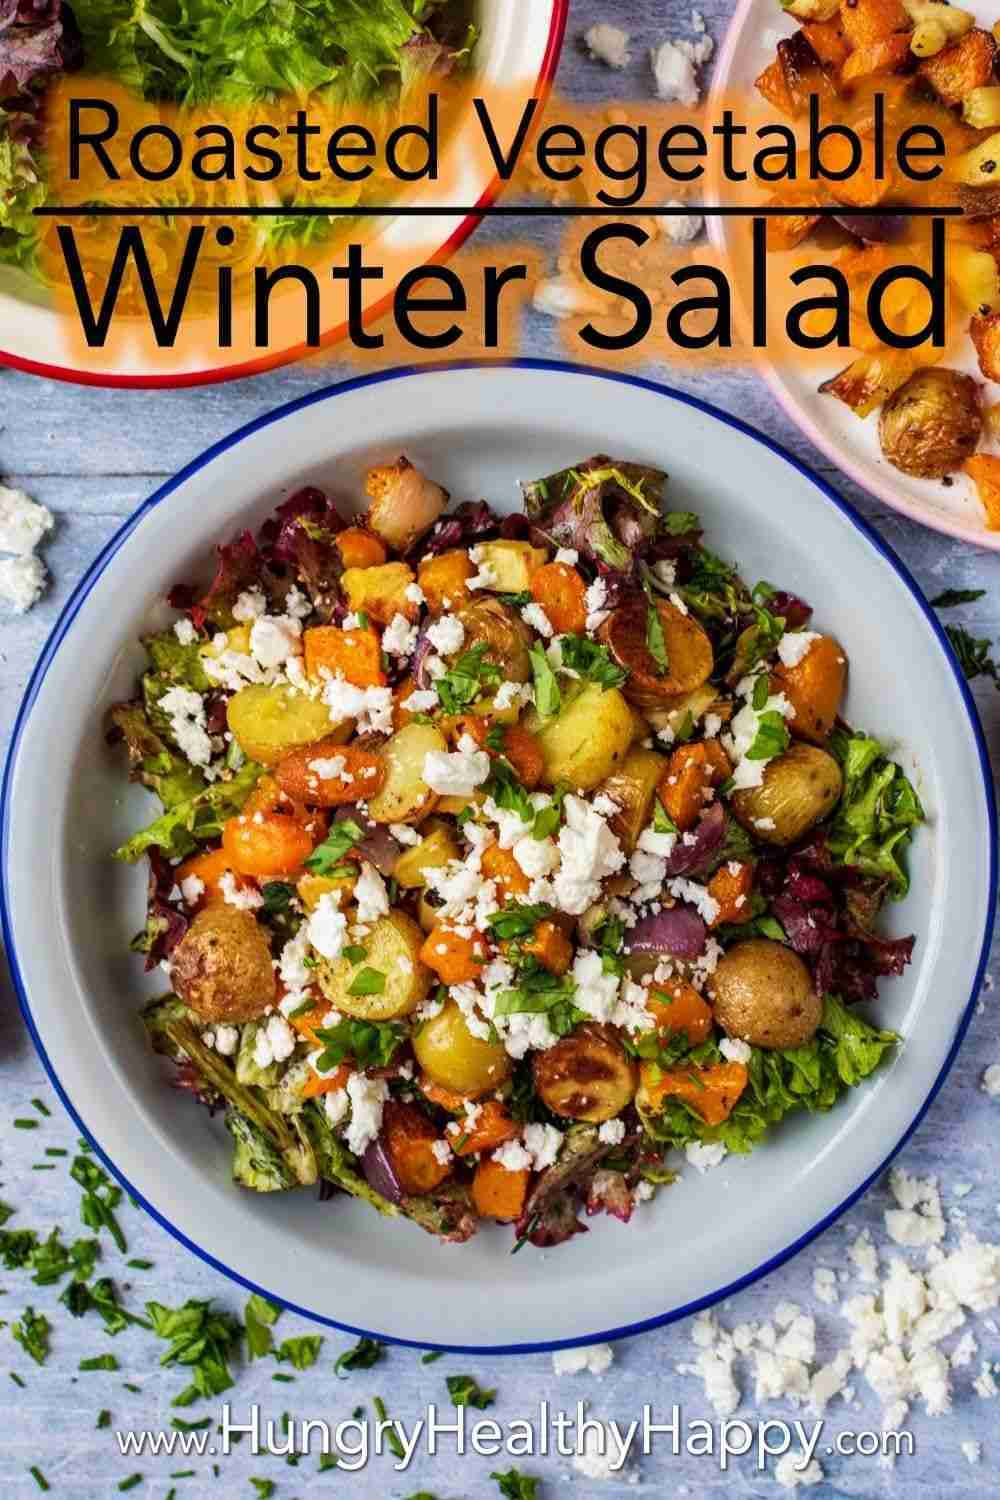 This Roasted Vegetable Winter Salad is a salad for people that think salads aren't filling or they think they are boring. It's the salad for people that think they don't like salads! Warm and hearty – perfect for a cold winter day.